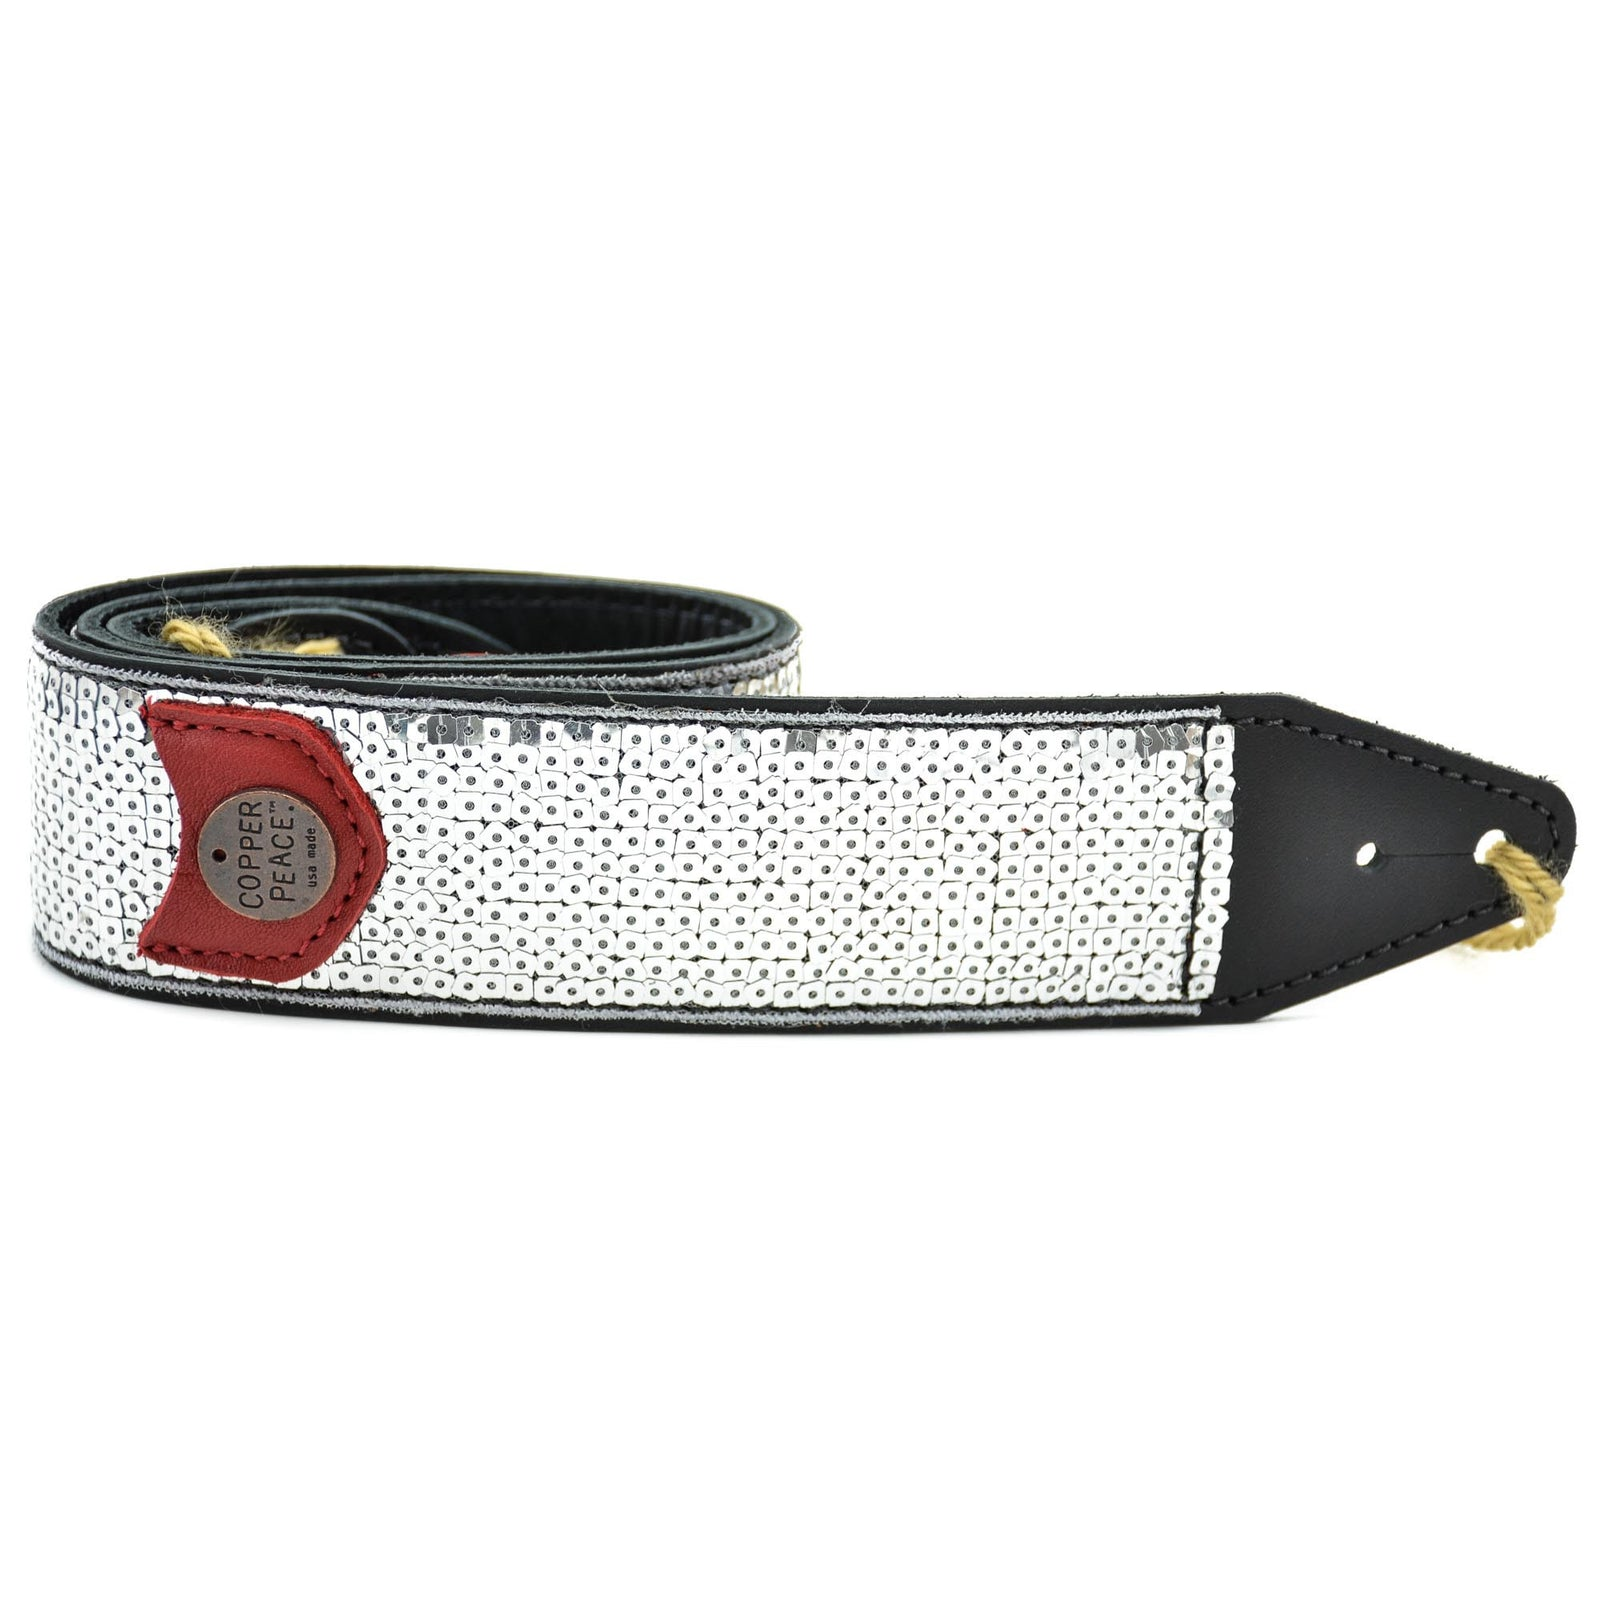 Copperpeace Glovely Silver Sequined Guitar Strap - Image: 1